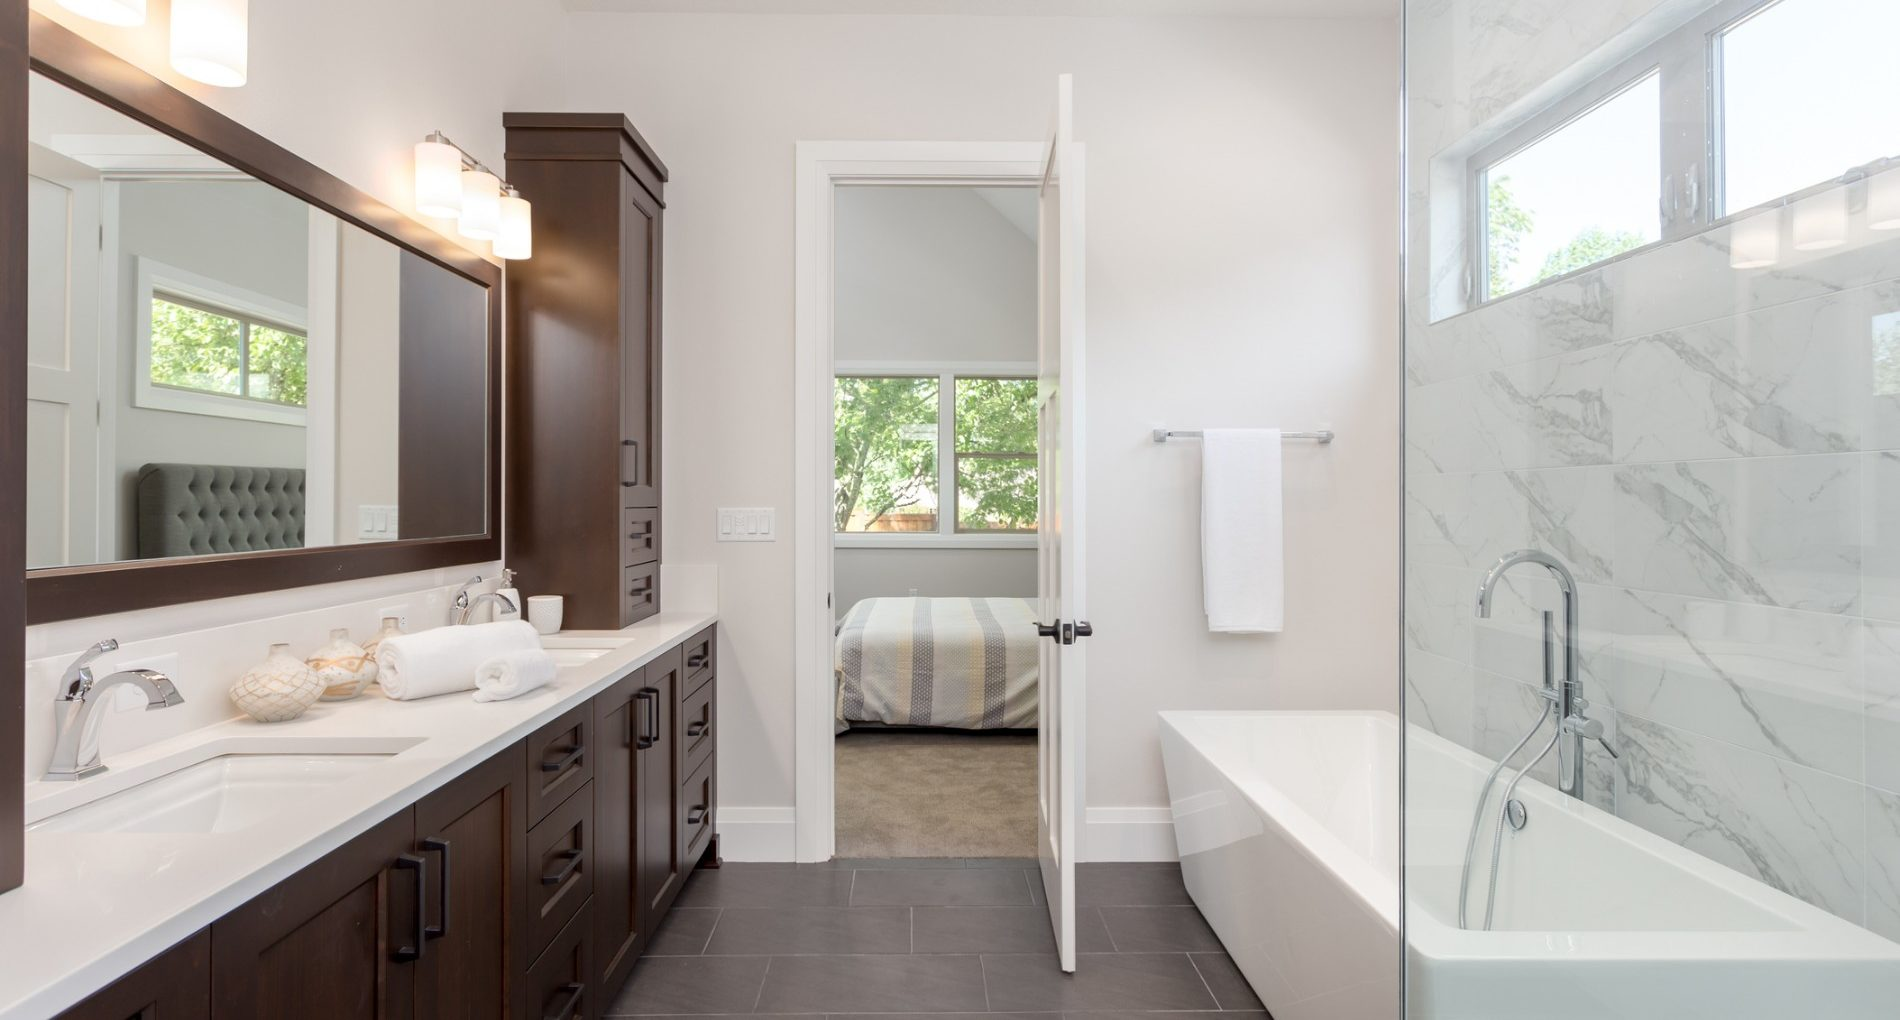 10 Design Ideas to Make Your Custom Bathroom Easier to Clean